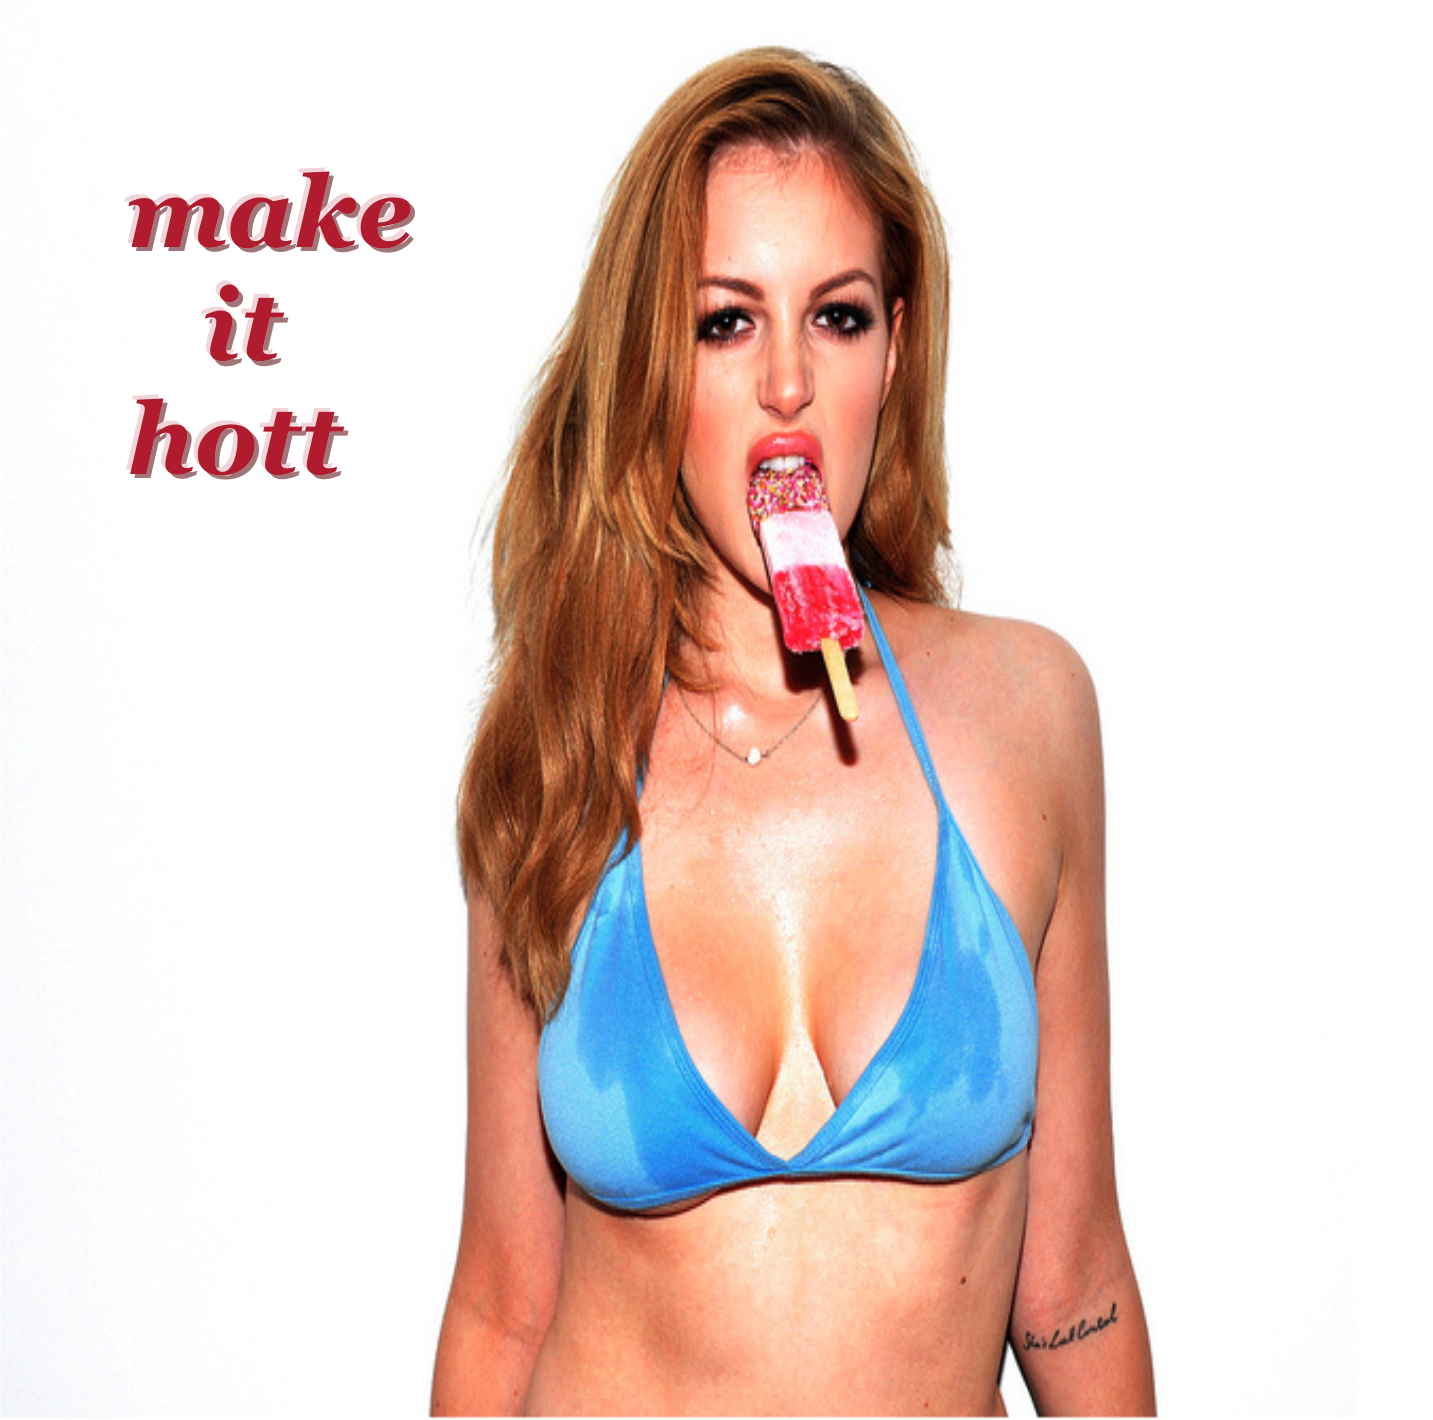 sizzling hott 2 download free